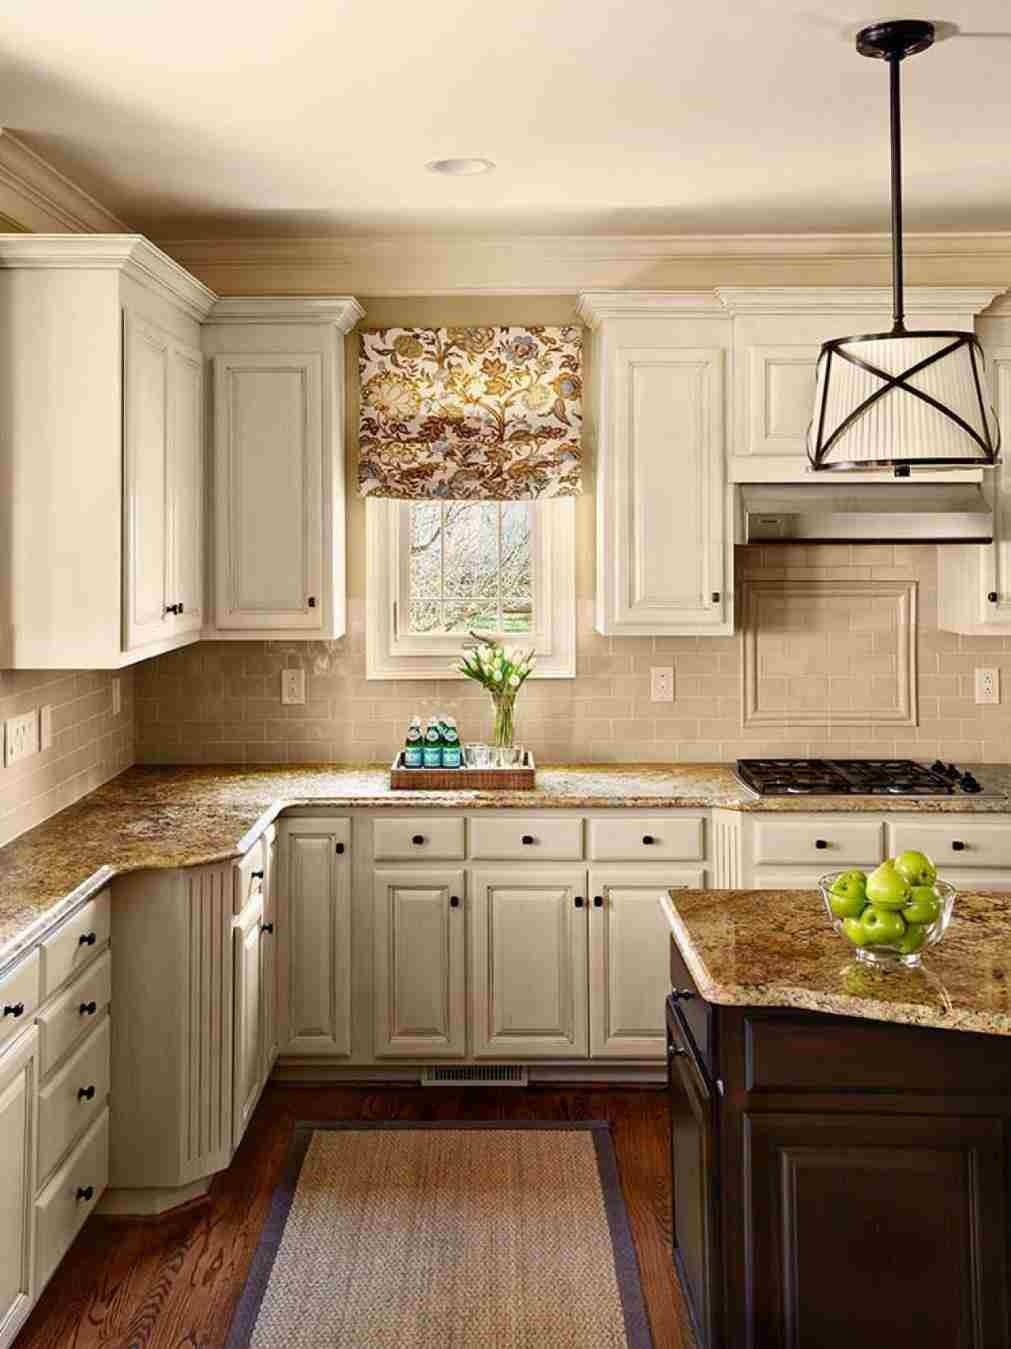 Most Popular Kitchen Cabinet Colors Right Now